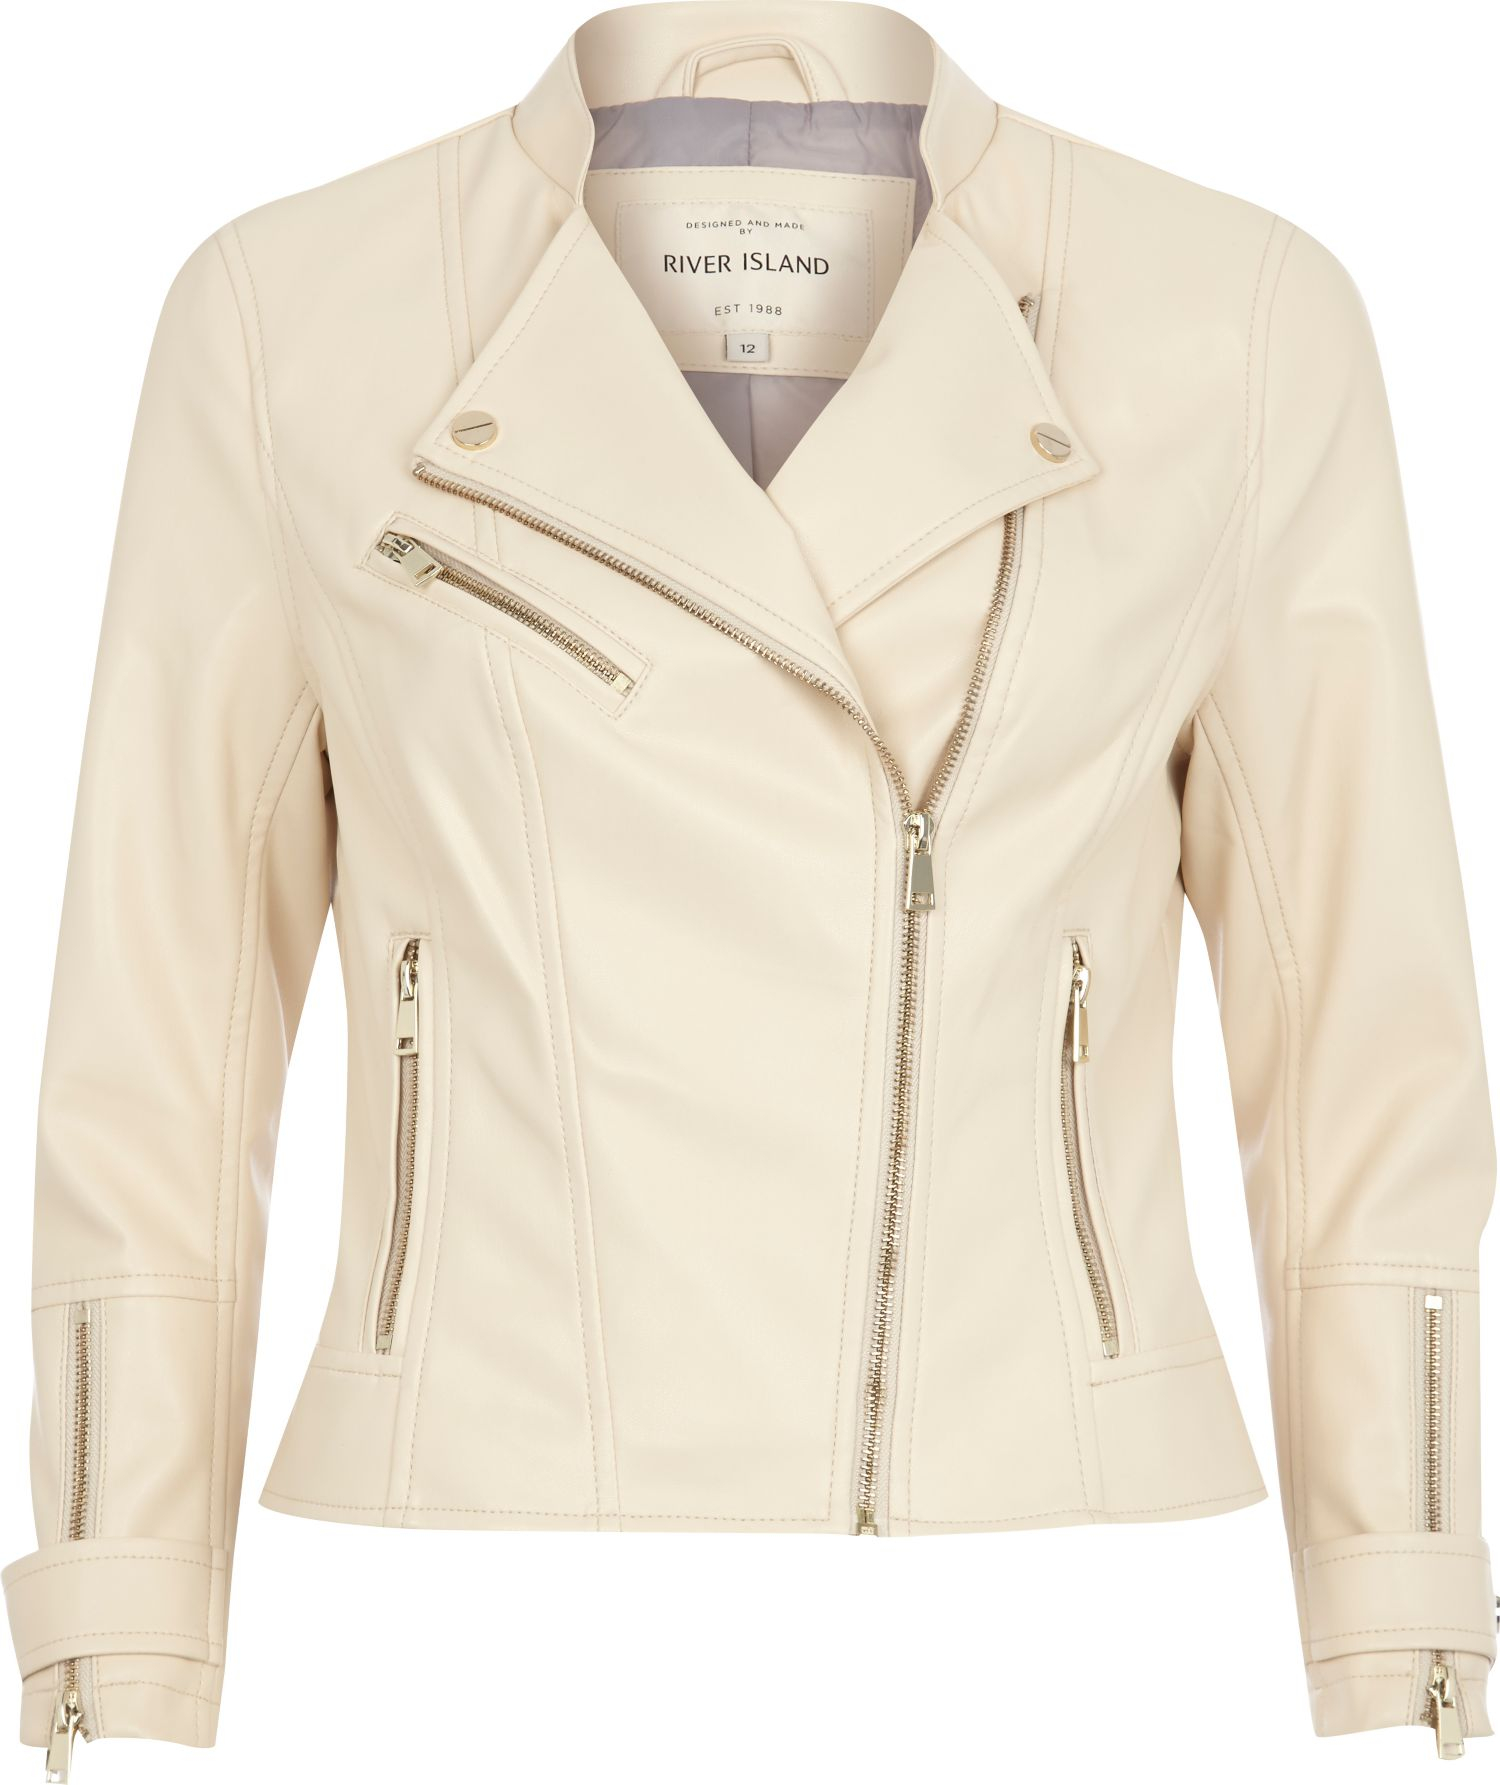 Lyst - River island Cream Leather-Look Biker Jacket in Natural